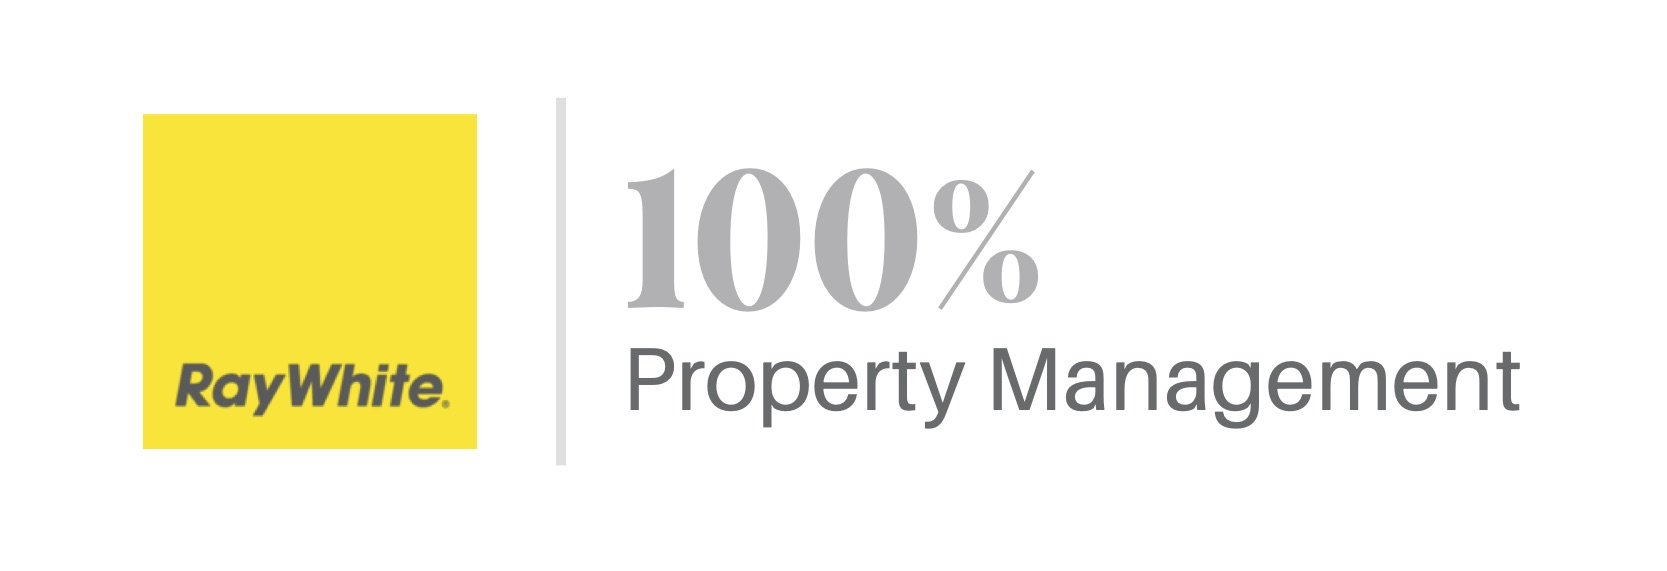 RayWhite 100% Property Management Logo